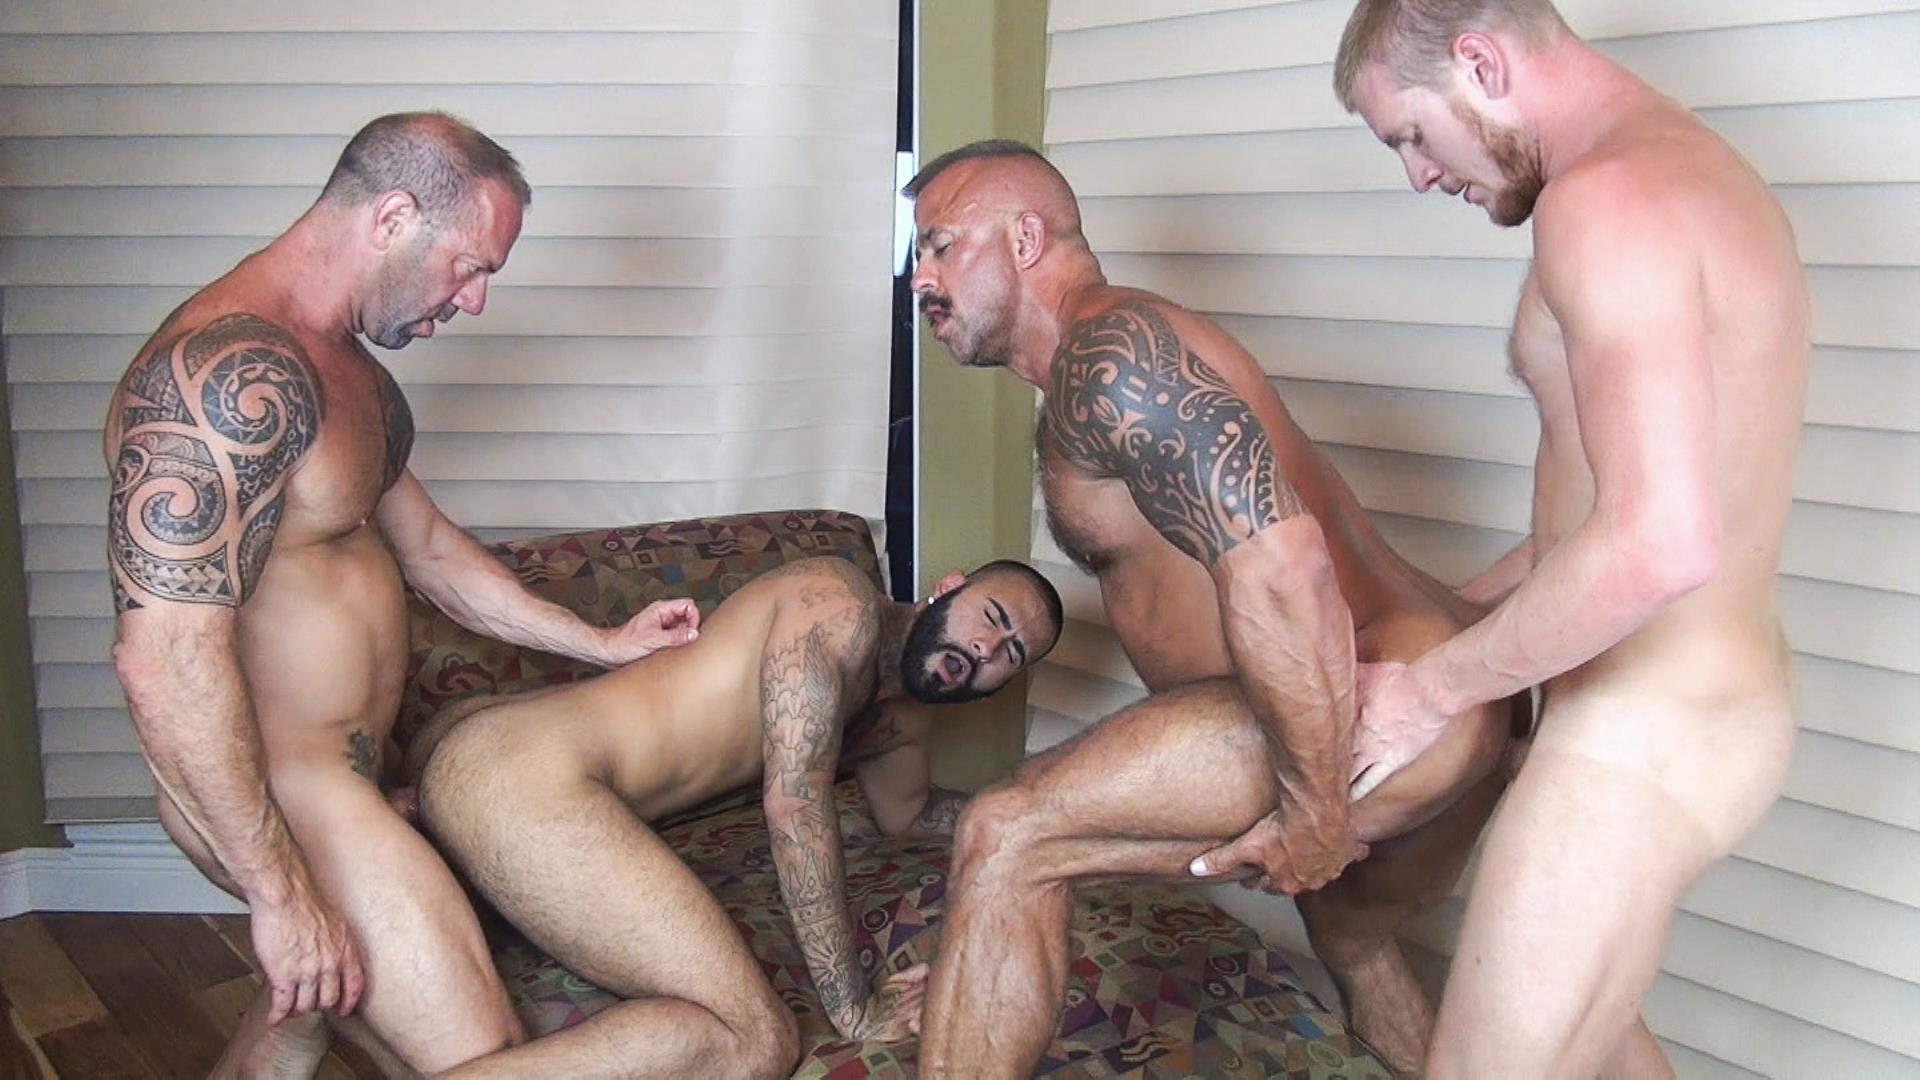 Raw Fuck Club Vic Rocco and Rikk York and Billy Warren and Job Galt Bareback Daddy Amateur Gay Porn 09 Four Hairy Muscle Daddies In A Bareback Fuck Fest Orgy